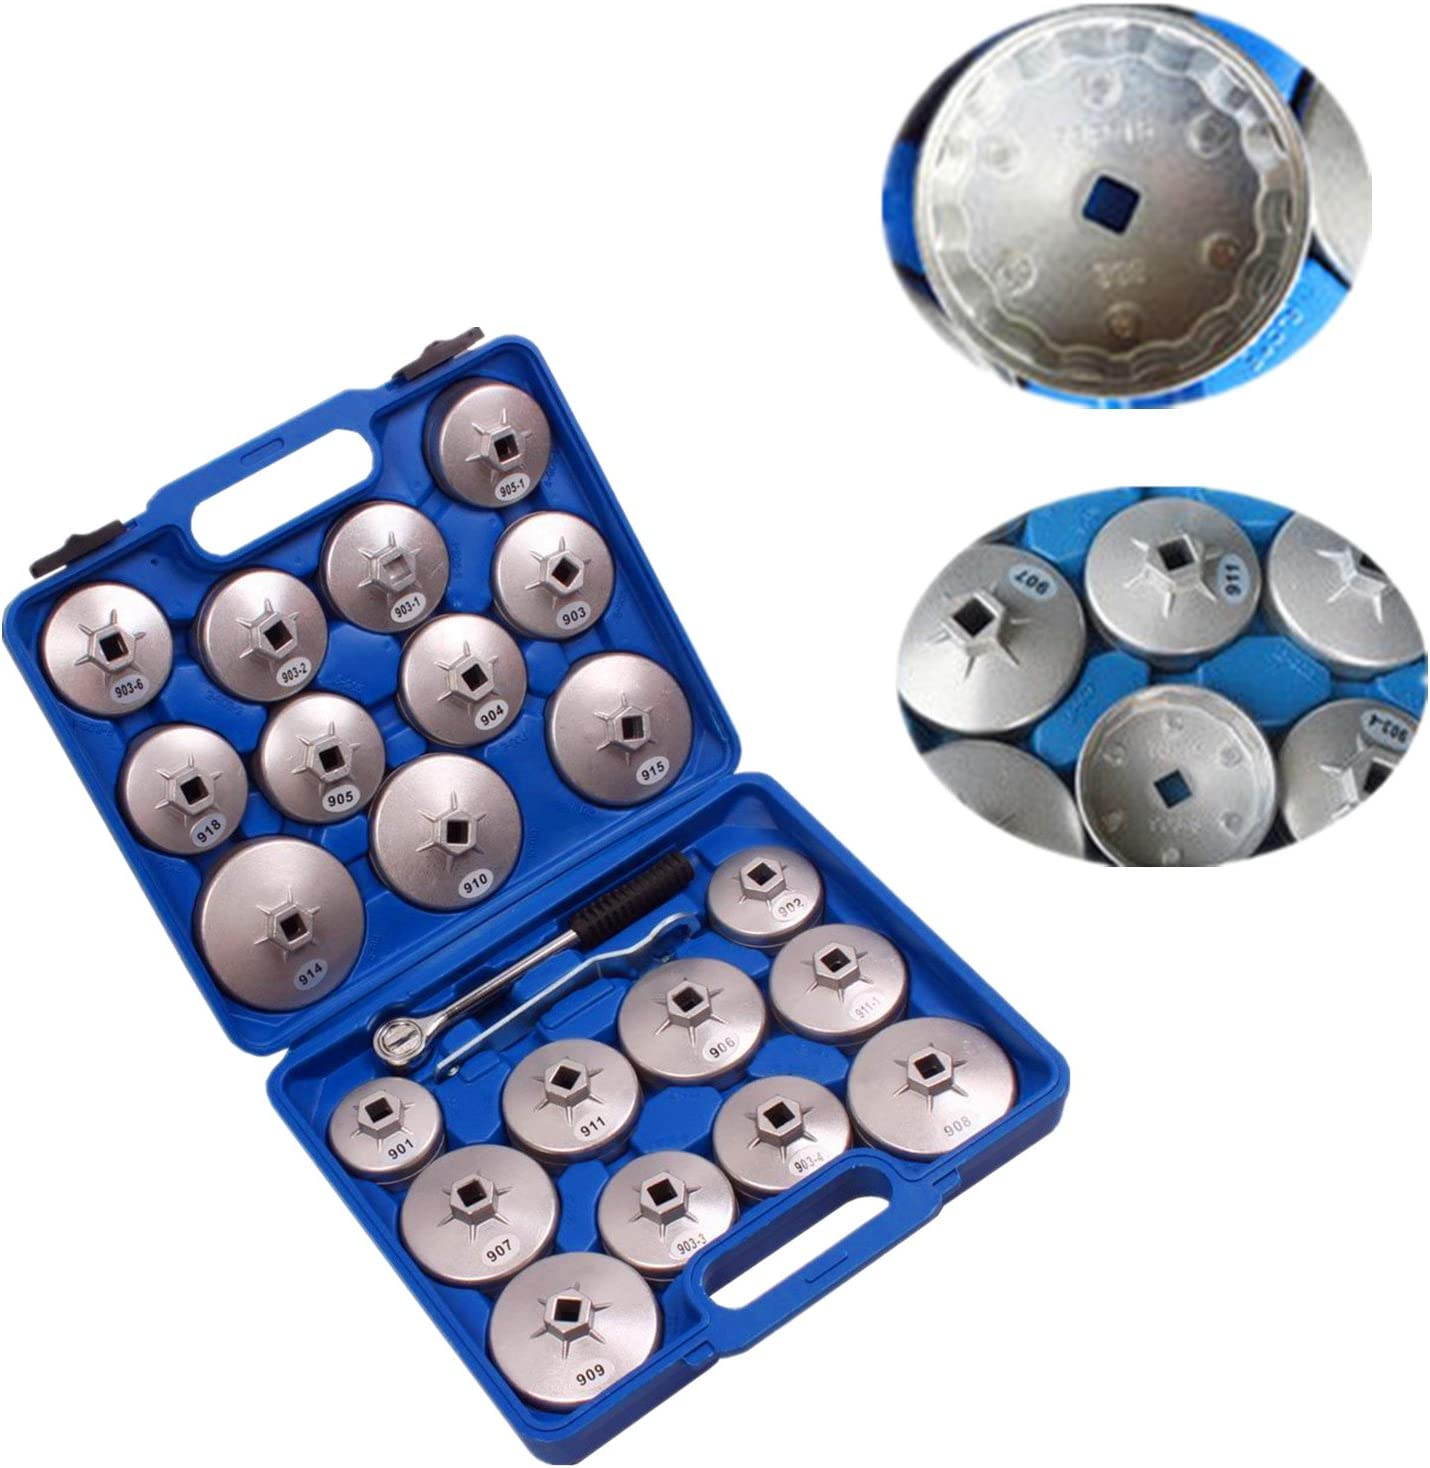 23pcs Aluminum Alloy Cup Type Oil Filter Cap Wrench Socket Removal Tool Set 1//2 dr with a Storage Case